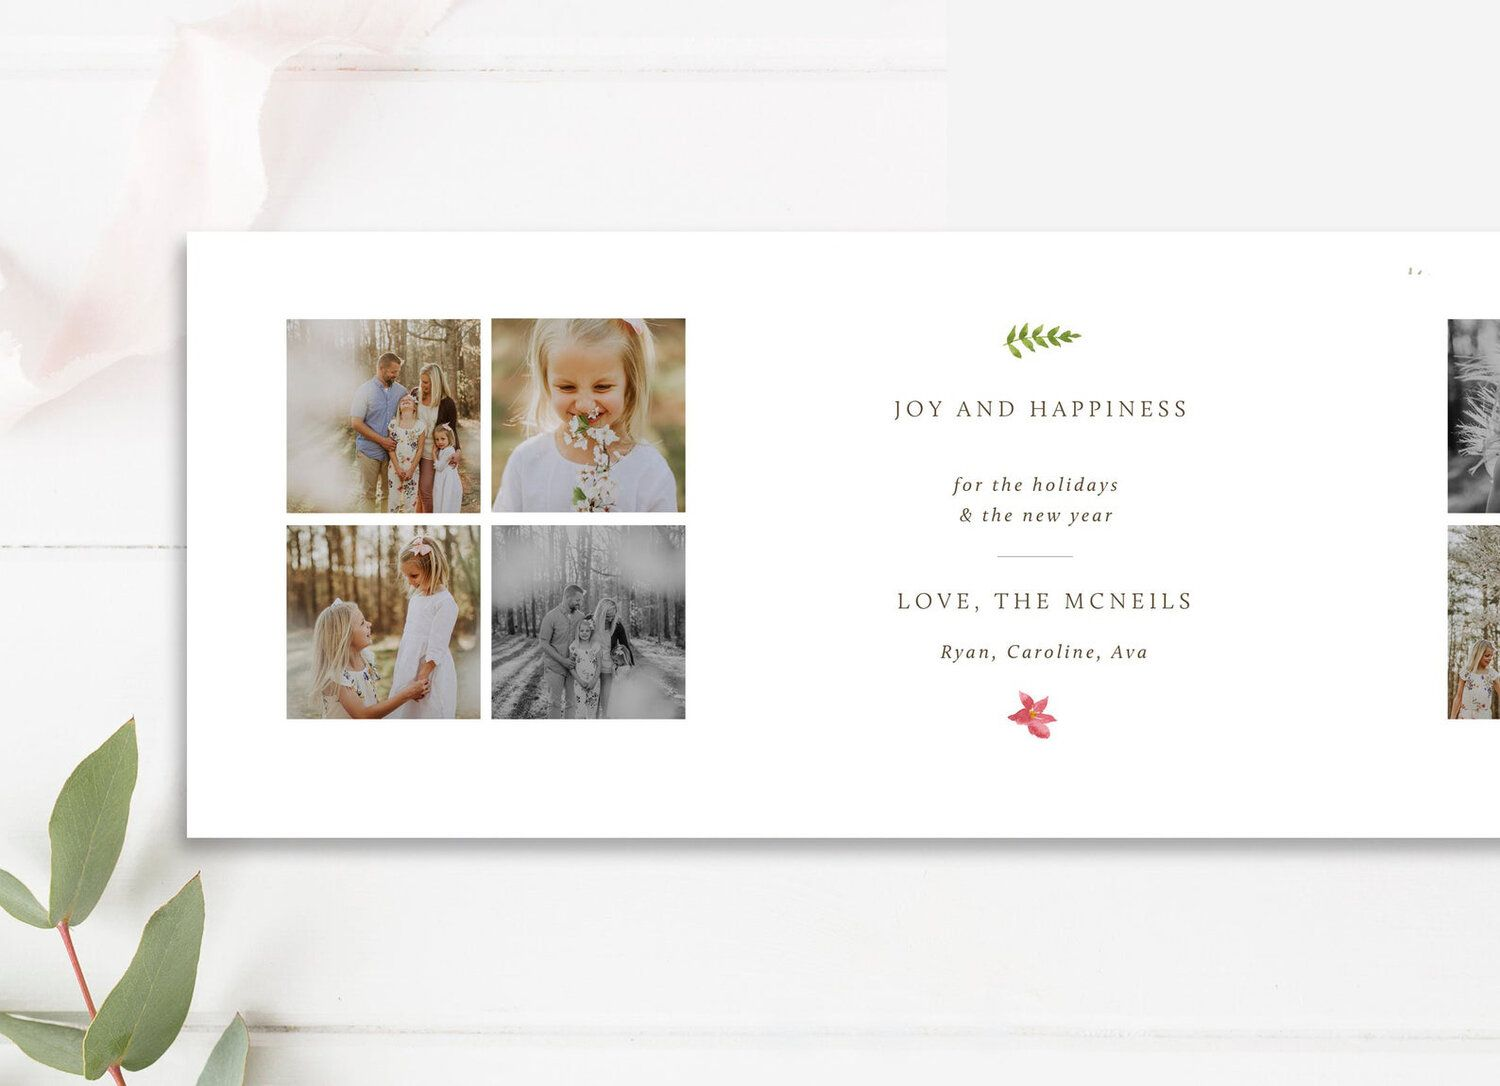 Tri Fold Holiday Card 5x5 Accordion Trifold Design Photoshop Template Design Folded Holiday Cards Photo Card Template